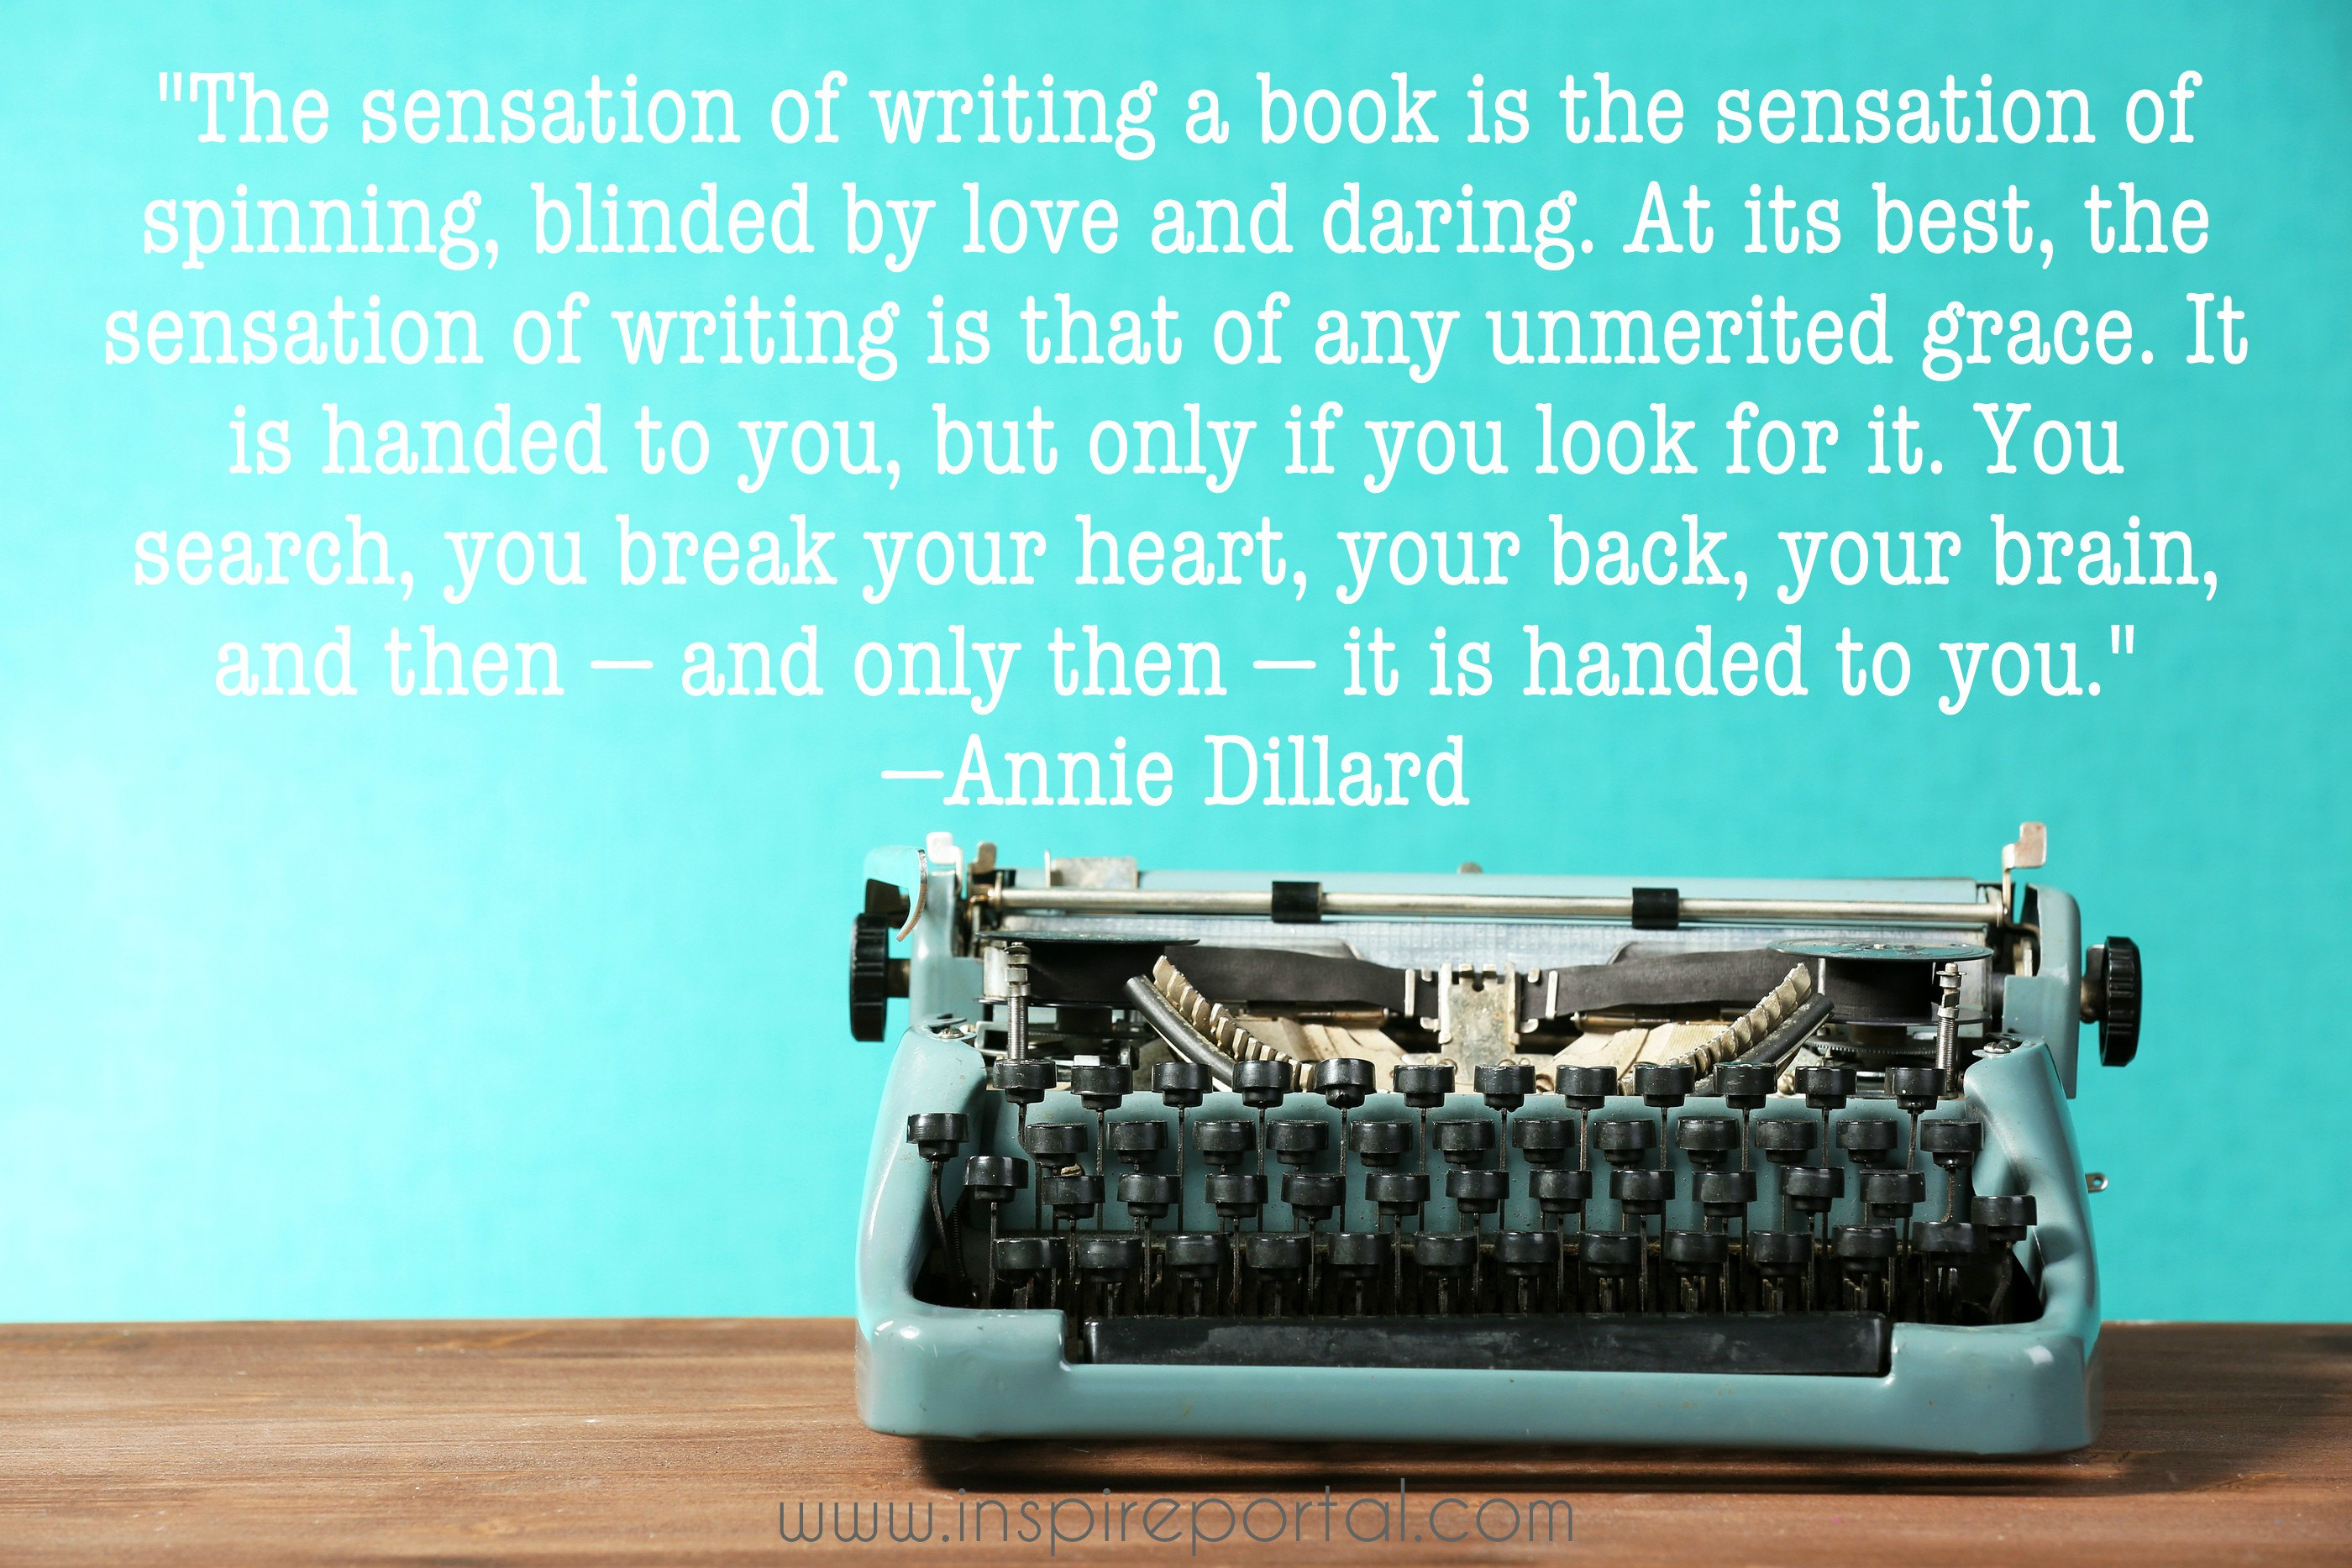 Quote IP annie dillard